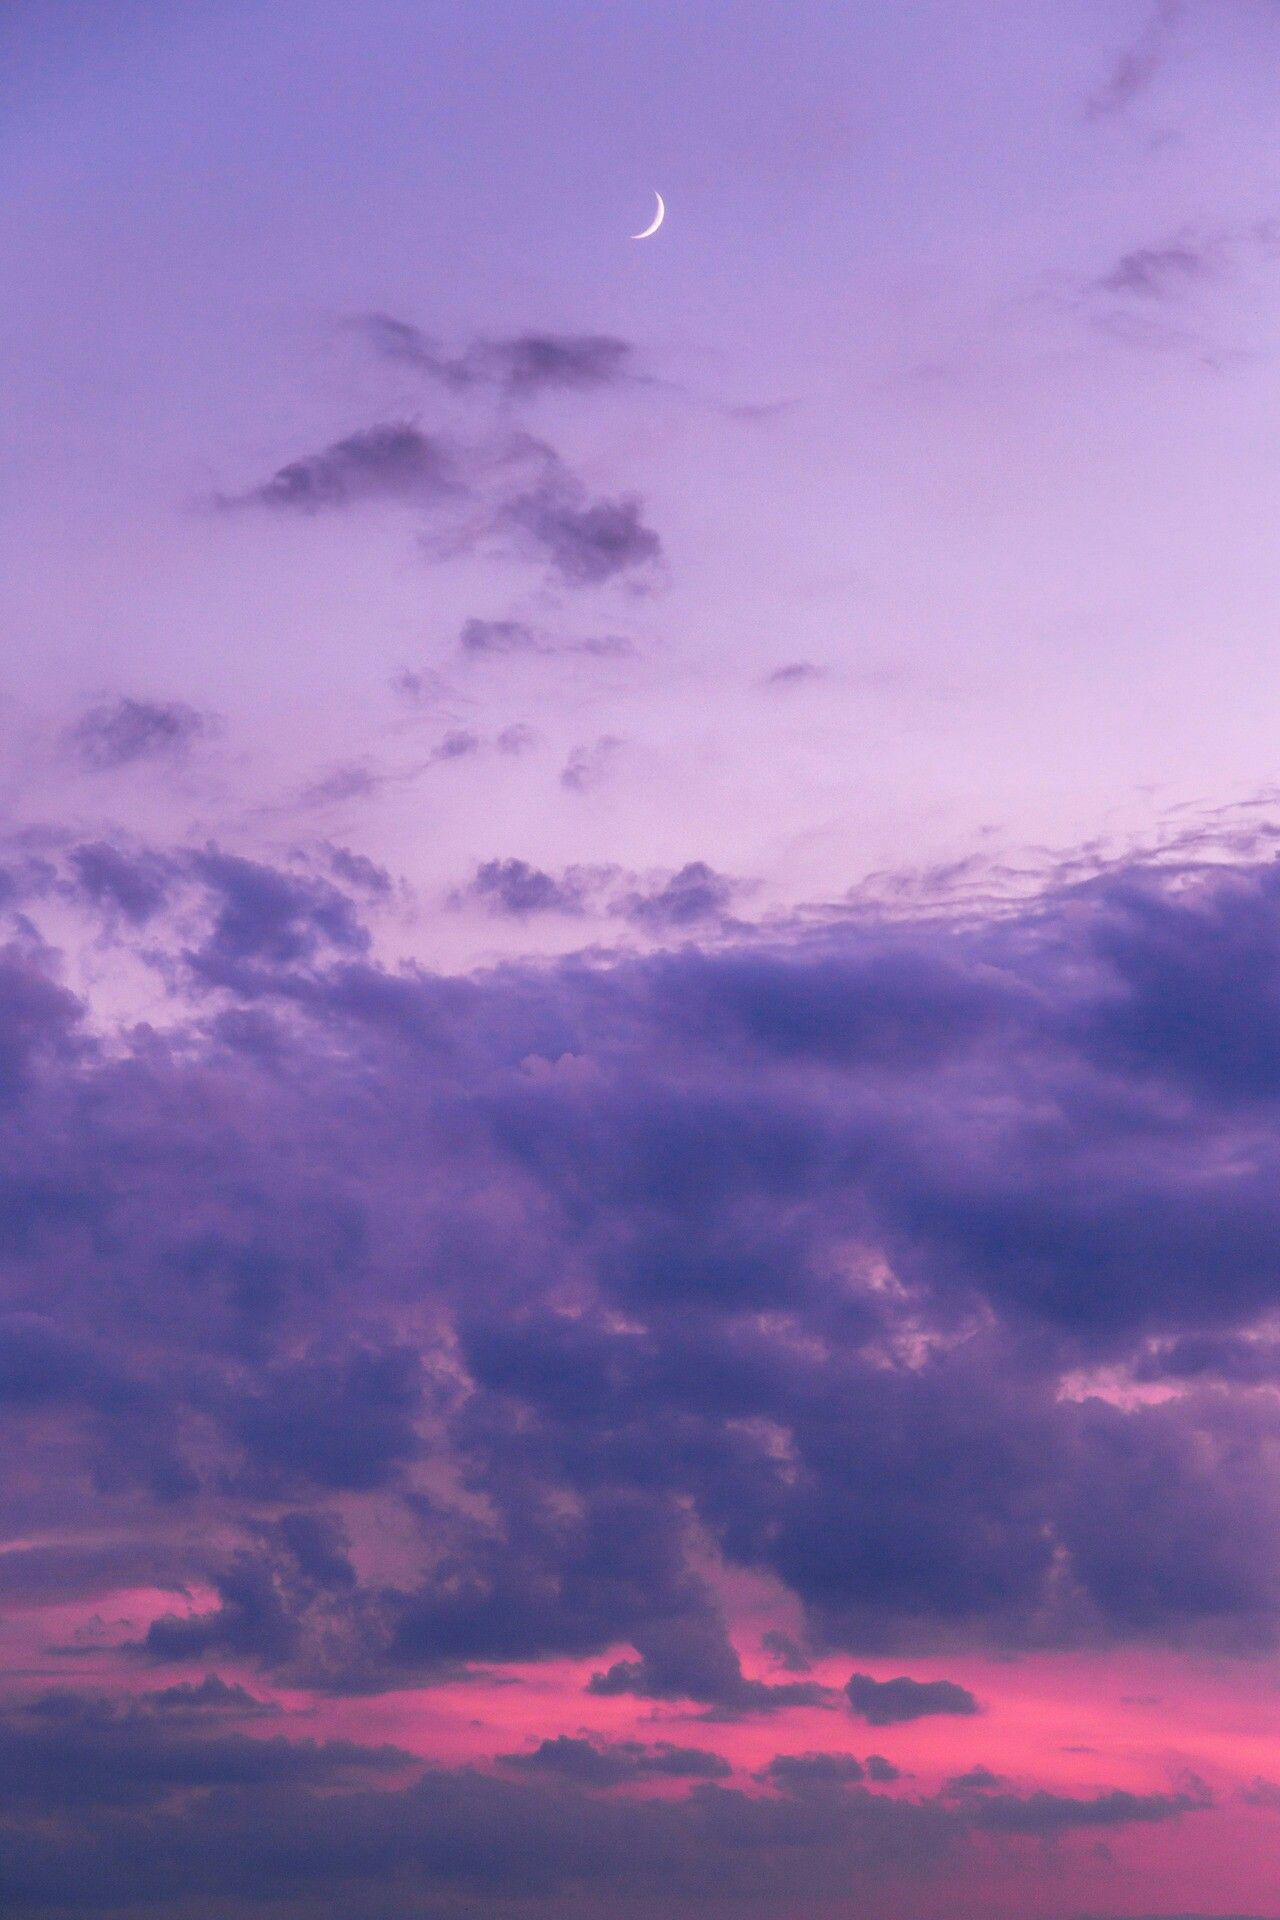 Pin By Giuliafaraone21 On Ciel Nuages Sky Clouds Purple Wallpaper Iphone Purple Wallpaper Aesthetic Wallpapers